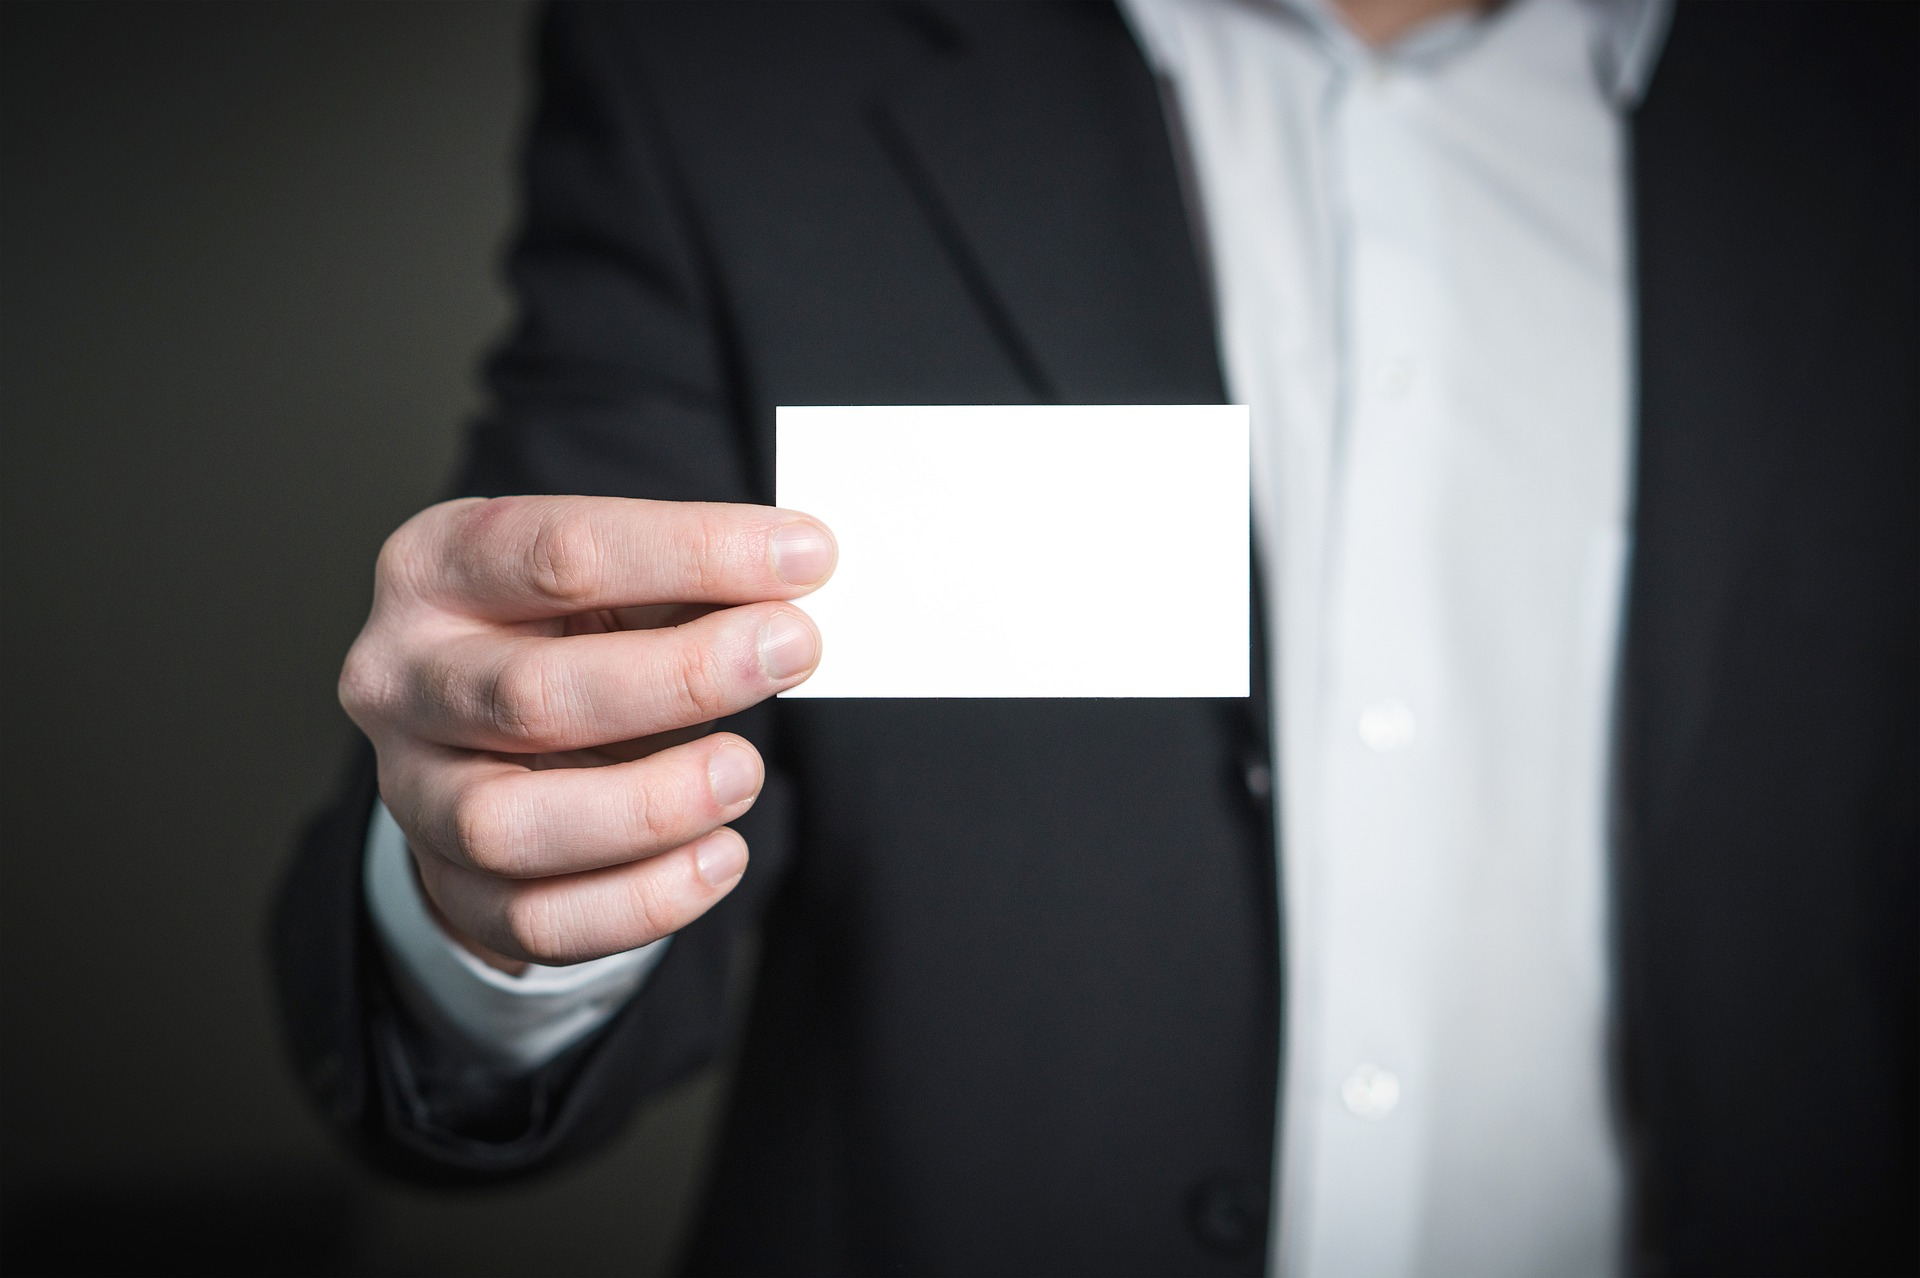 A value of business cards and banners for promoting your new man holding business card pixabay colourmoves